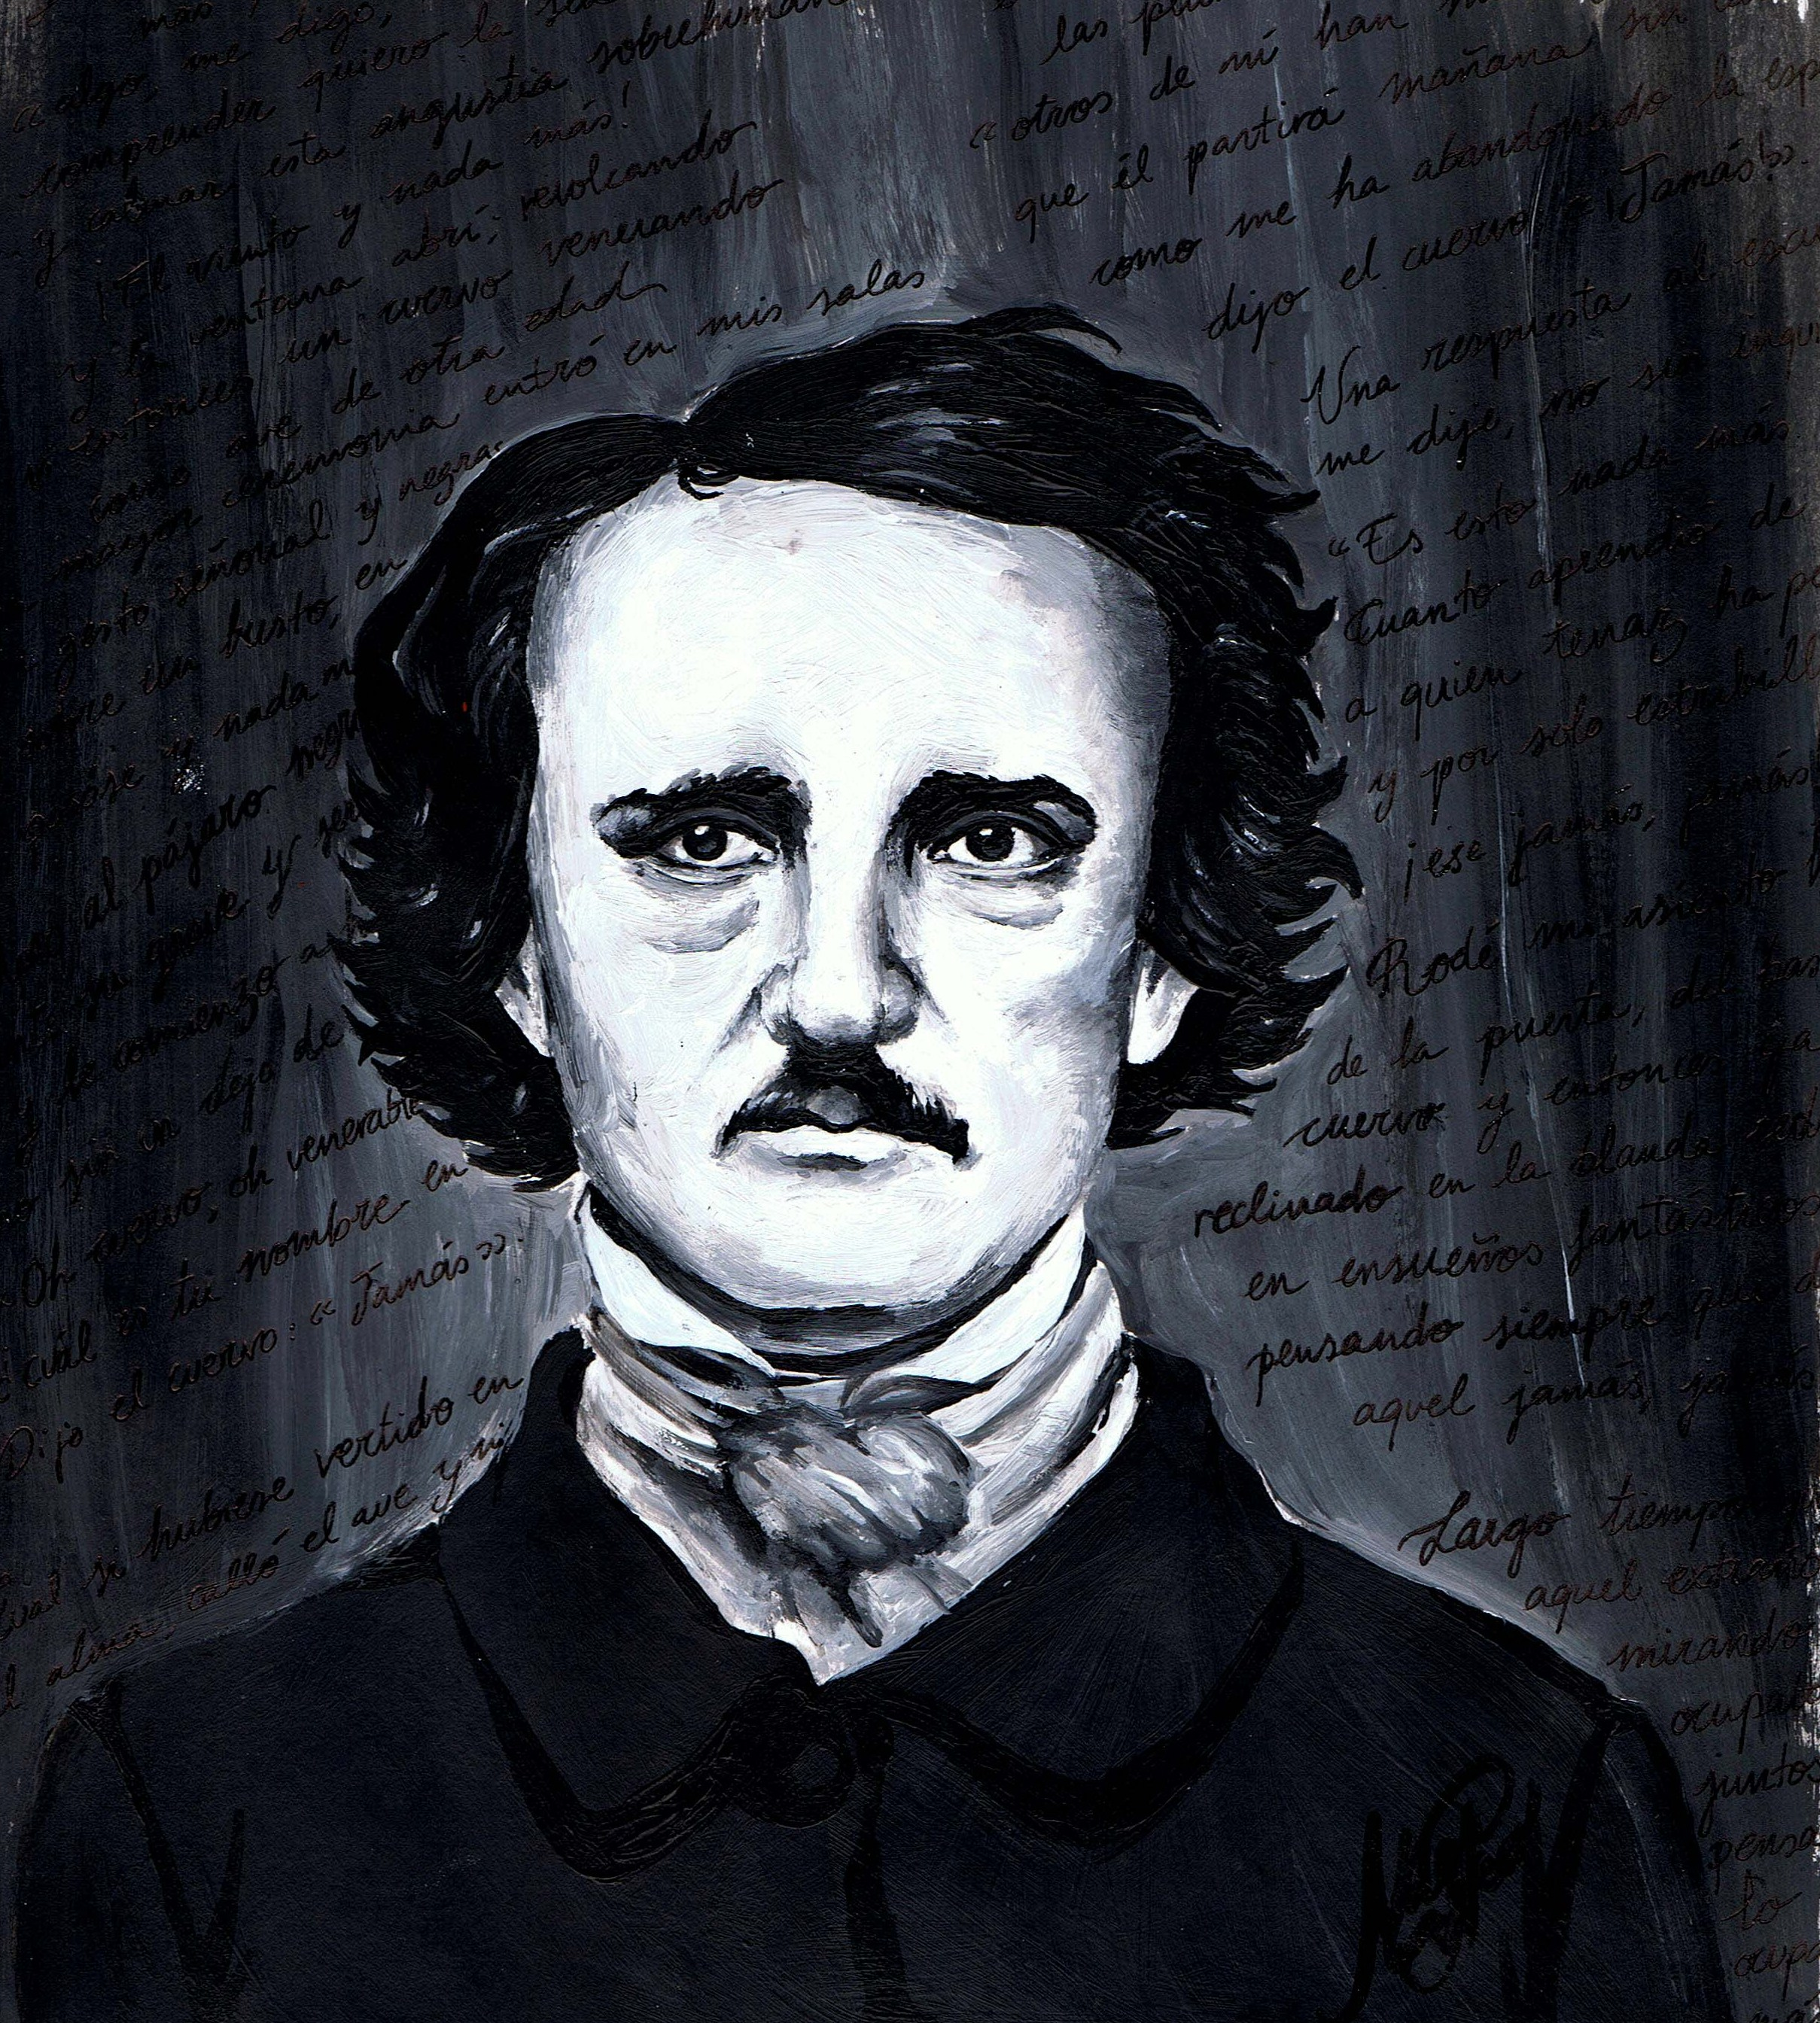 edgar allen poe writing Edgar allan poe: edgar allan poe (1809–49) was an american writer and poet who invented the modern detective story and created enduring tales of horror.